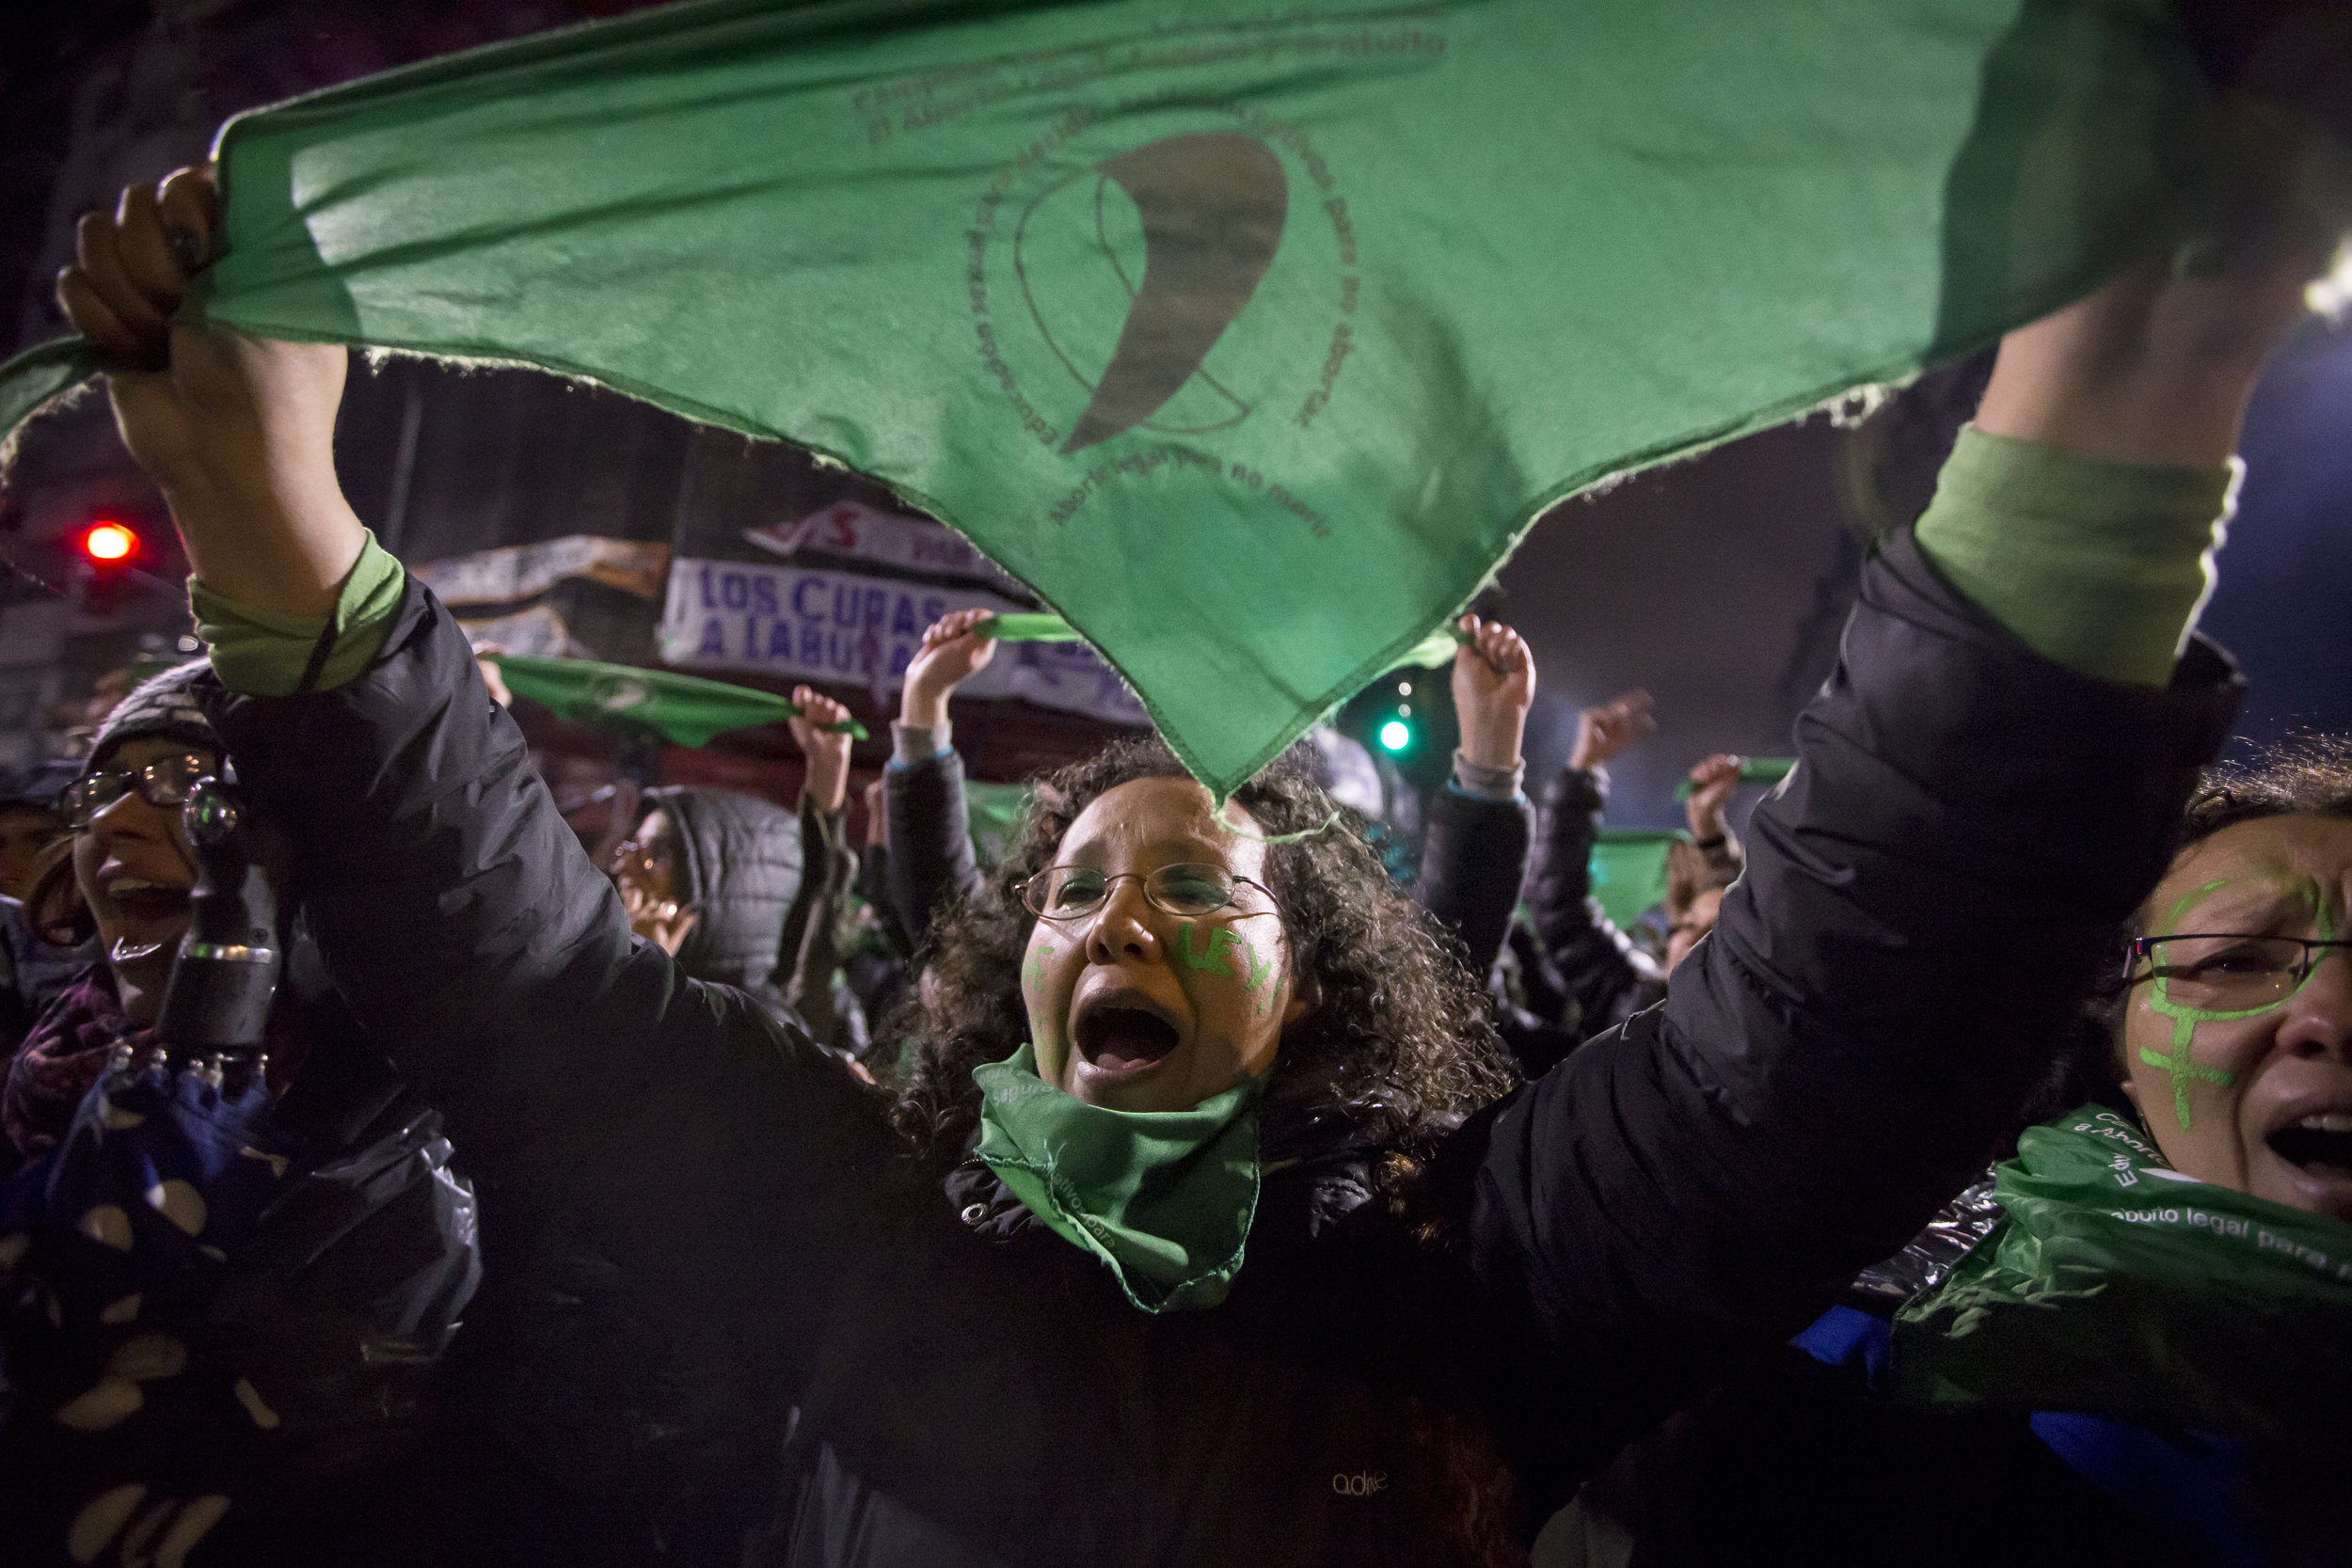 A woman protests with the green handkerchief – the symbol of the pro-choice movement – during the vigil of the bill which would de-criminalize and legalize abortion near the Congress in Buenos Aires, Argentina, on Aug. 8, 2018.